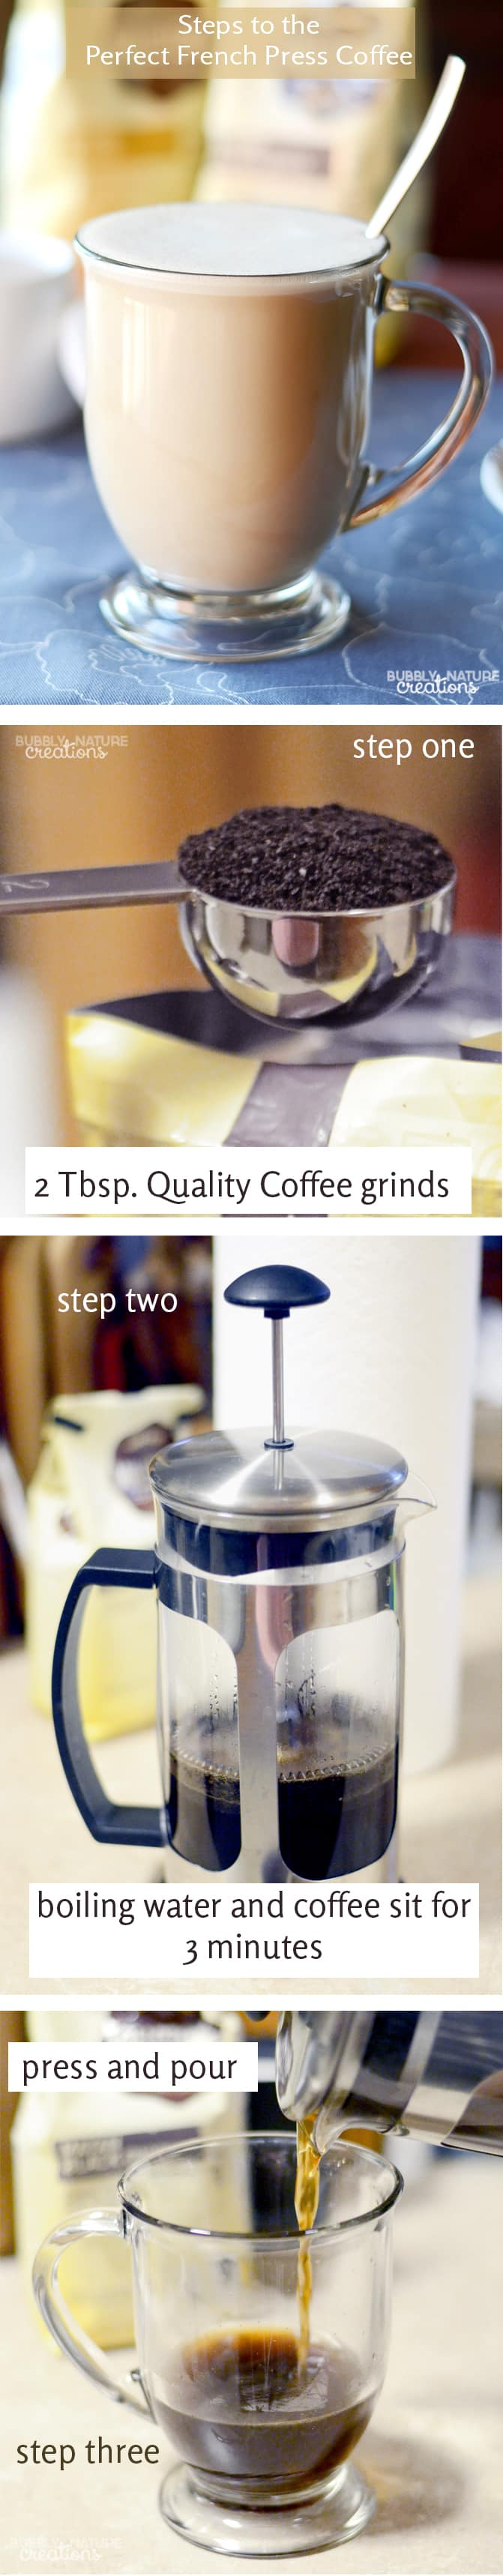 Steps to the Perfect French Press Coffee! #MillstoneCoffee #ad